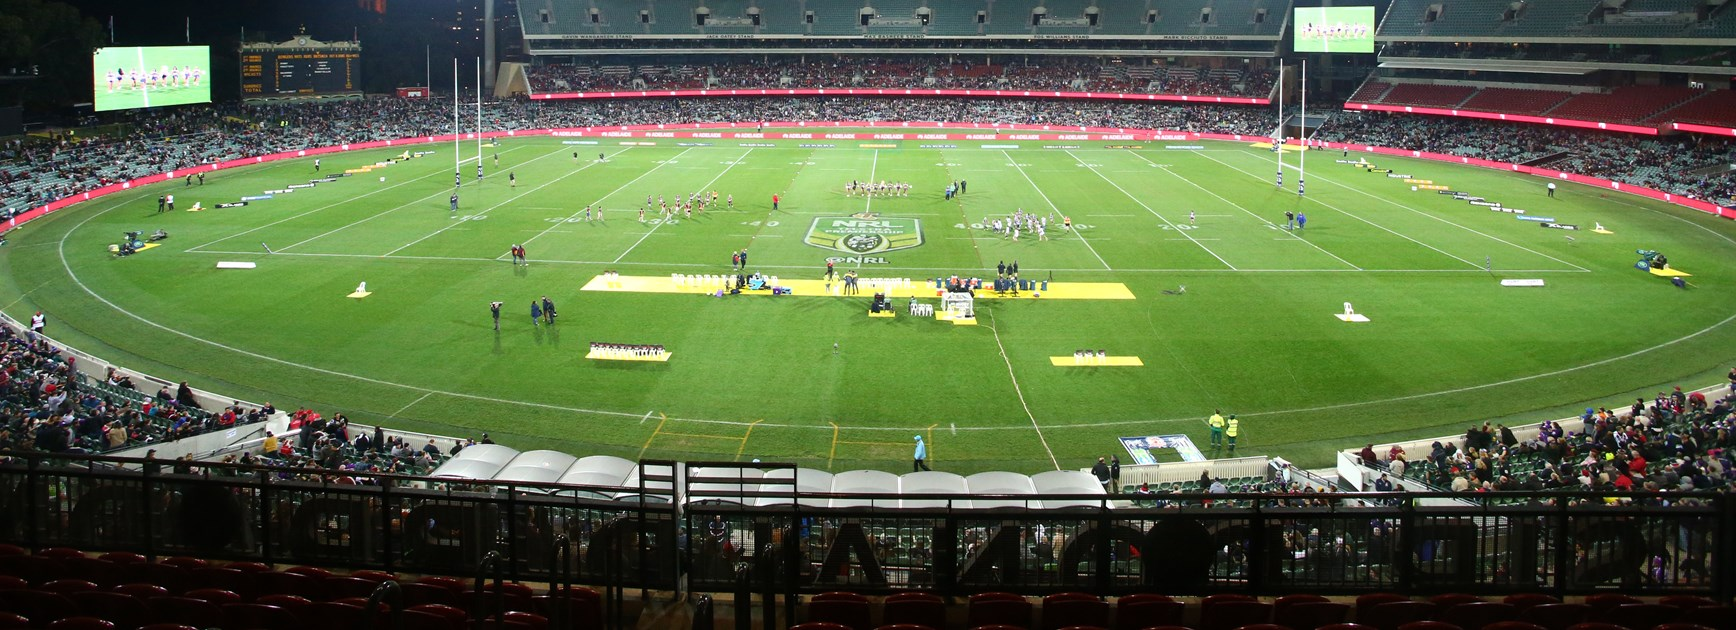 Adelaide Oval to host State of Origin in 2020